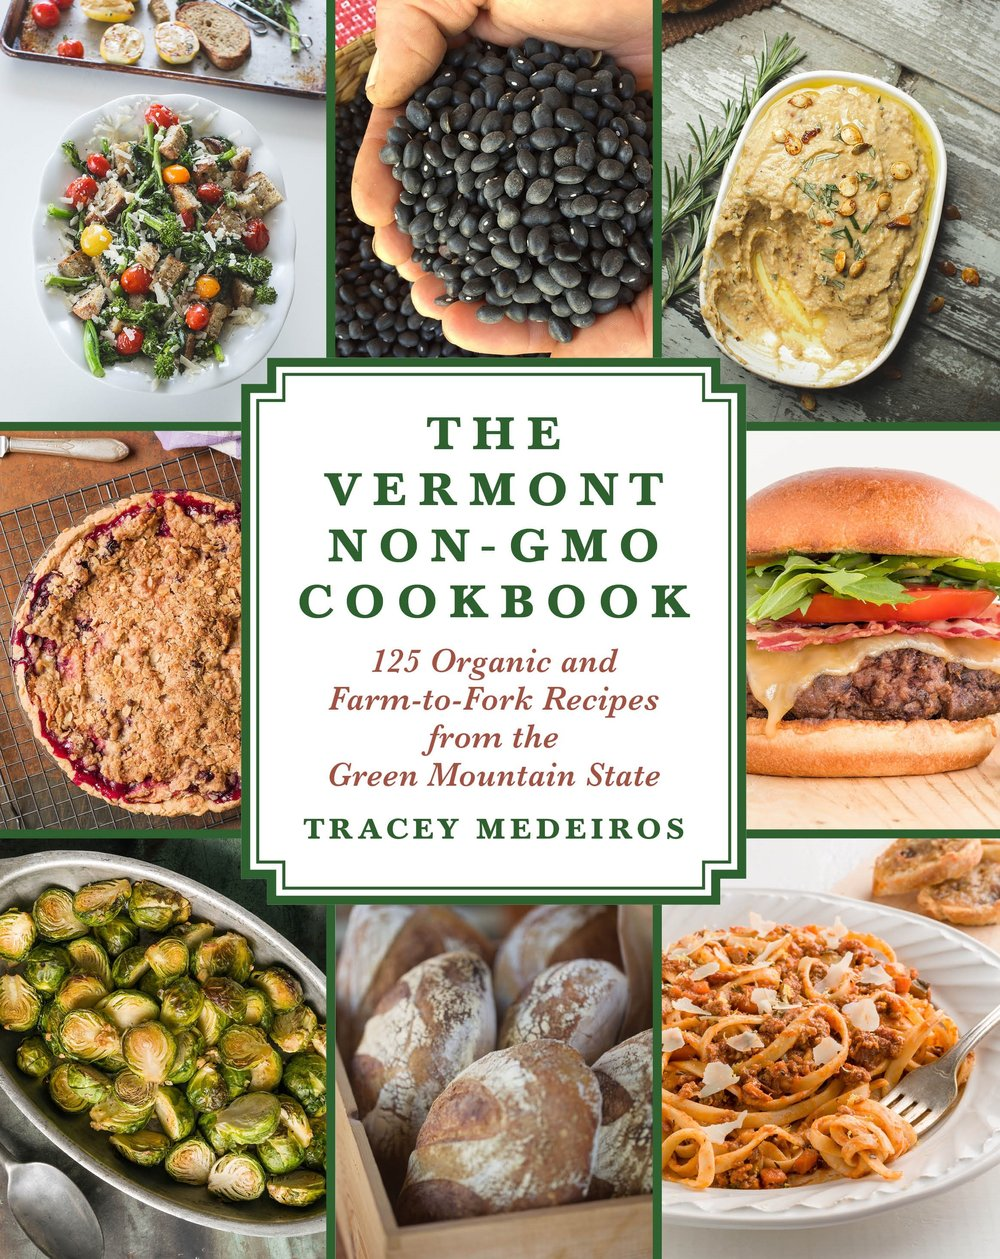 The Vermont Non-GMO Cookbook So Much More Than a Cookbook The Vermont Non-GMO Cookbook honors the state's mission to connect with its local organic farmlands and the farmers who nurture and care for them. It also serves as a guide for eating organically and non-GMO in Vermont. The book celebrates the region's esteemed organic food producers, farmers, cheesemakers, and dairy farmers as well as the the chefs who partner with them to create delicious, innovative, organic, and non-GMO recipes, such as:  ·  Maple Kale Salad with Toasted Almonds, Parmigiano-Reggiano Cheese, and Rustic Croutons ·  Oven-Roasted Organic Pulled Pork Sandwiches with Spicy Apple Cider Vinegar Slaw ·  Baked Frittata with Baby Spinach, Roasted Red Peppers, and Quark Cheese ·  Old-Fashioned Organic Cheesecake In addition to mouthwatering recipes, The Vermont Non-GMO Cookbook includes profiles of pioneering organic Vermont farmers, chefs, and non-GMO artisans. It will take you on a culinary adventure throughout the Green Mountain State, from Ben & Jerry's homemade ice cream to internationally inspired Kismet Kitchen to the busy Butternut Mountain Farm. Supported by rustic food photography, it will awaken and inspire your palate to the exciting options being offered by Vermont's burgeoning local, organic, and non-GMO food scene.  Skyhorse Publishing, Inc.  117 Main Street Suite 202 Brattleboro, VT 05301 Telephone: 802-579-1054 Link to Amazon.com